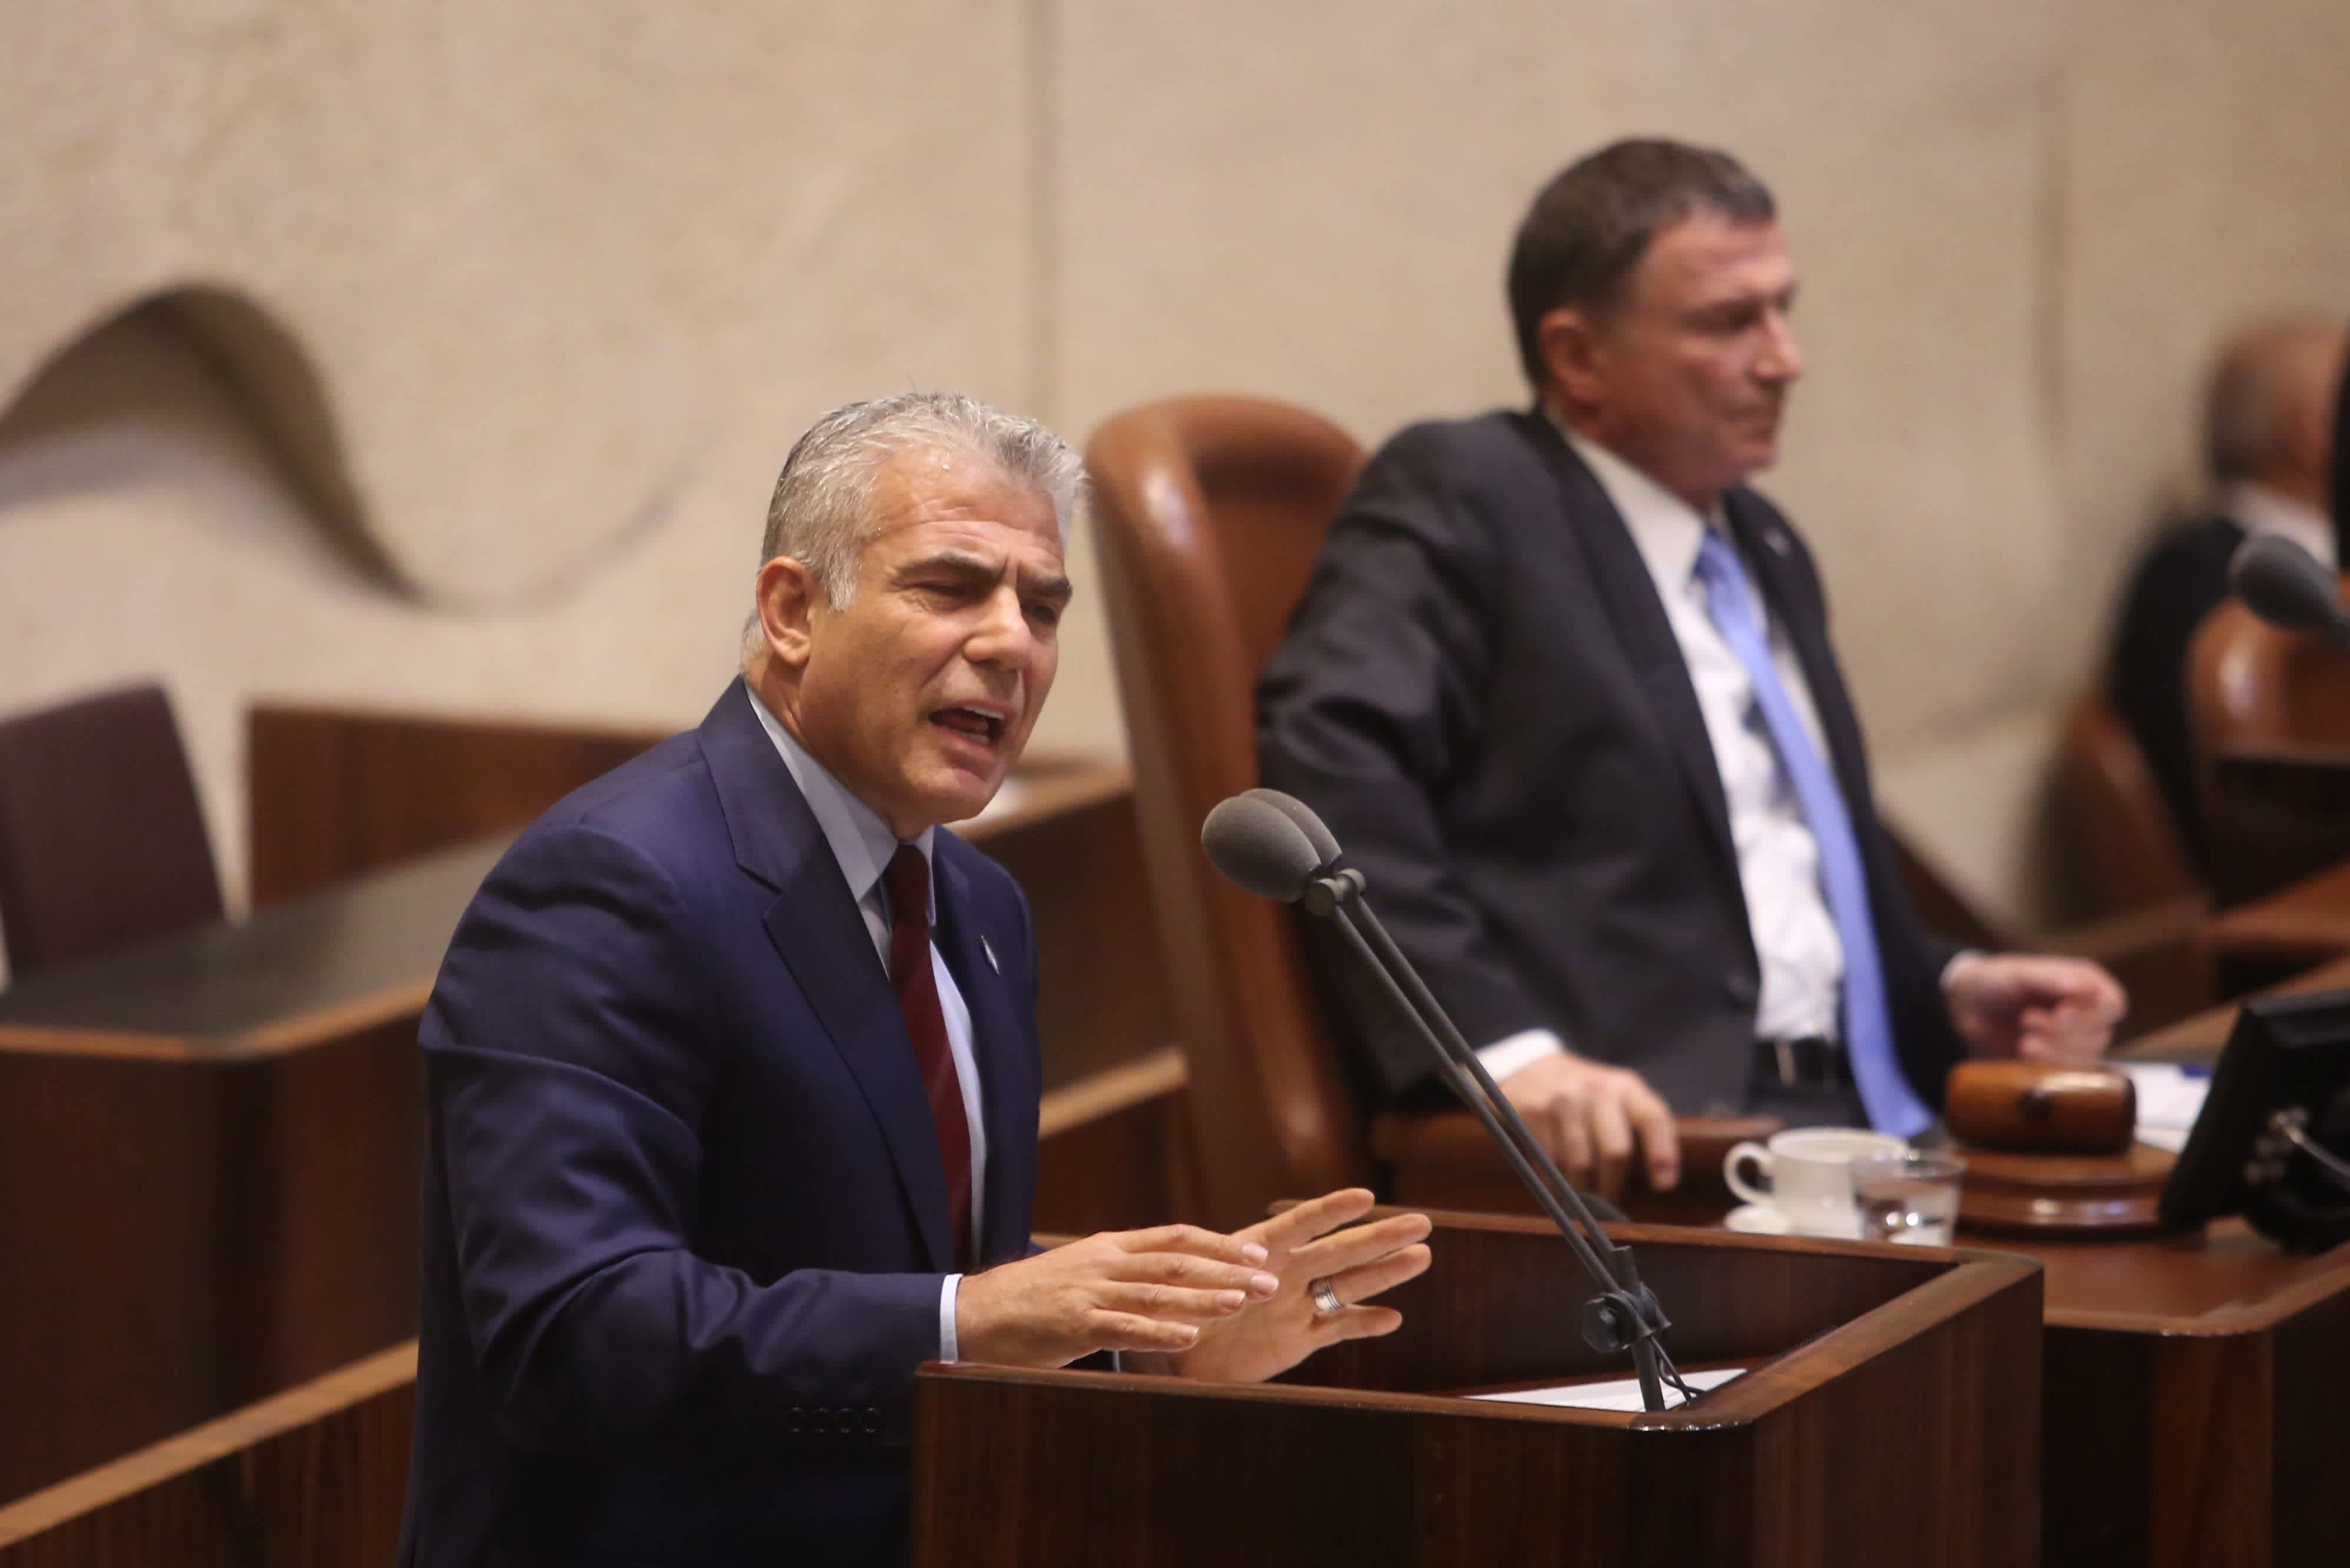 Yesh Atid leader Yair Lapid at the Knesset plenum discussing goverment allowances for the handicap, September 18, 2017. (Marc Israel Sellem/The Jerusalem Post)